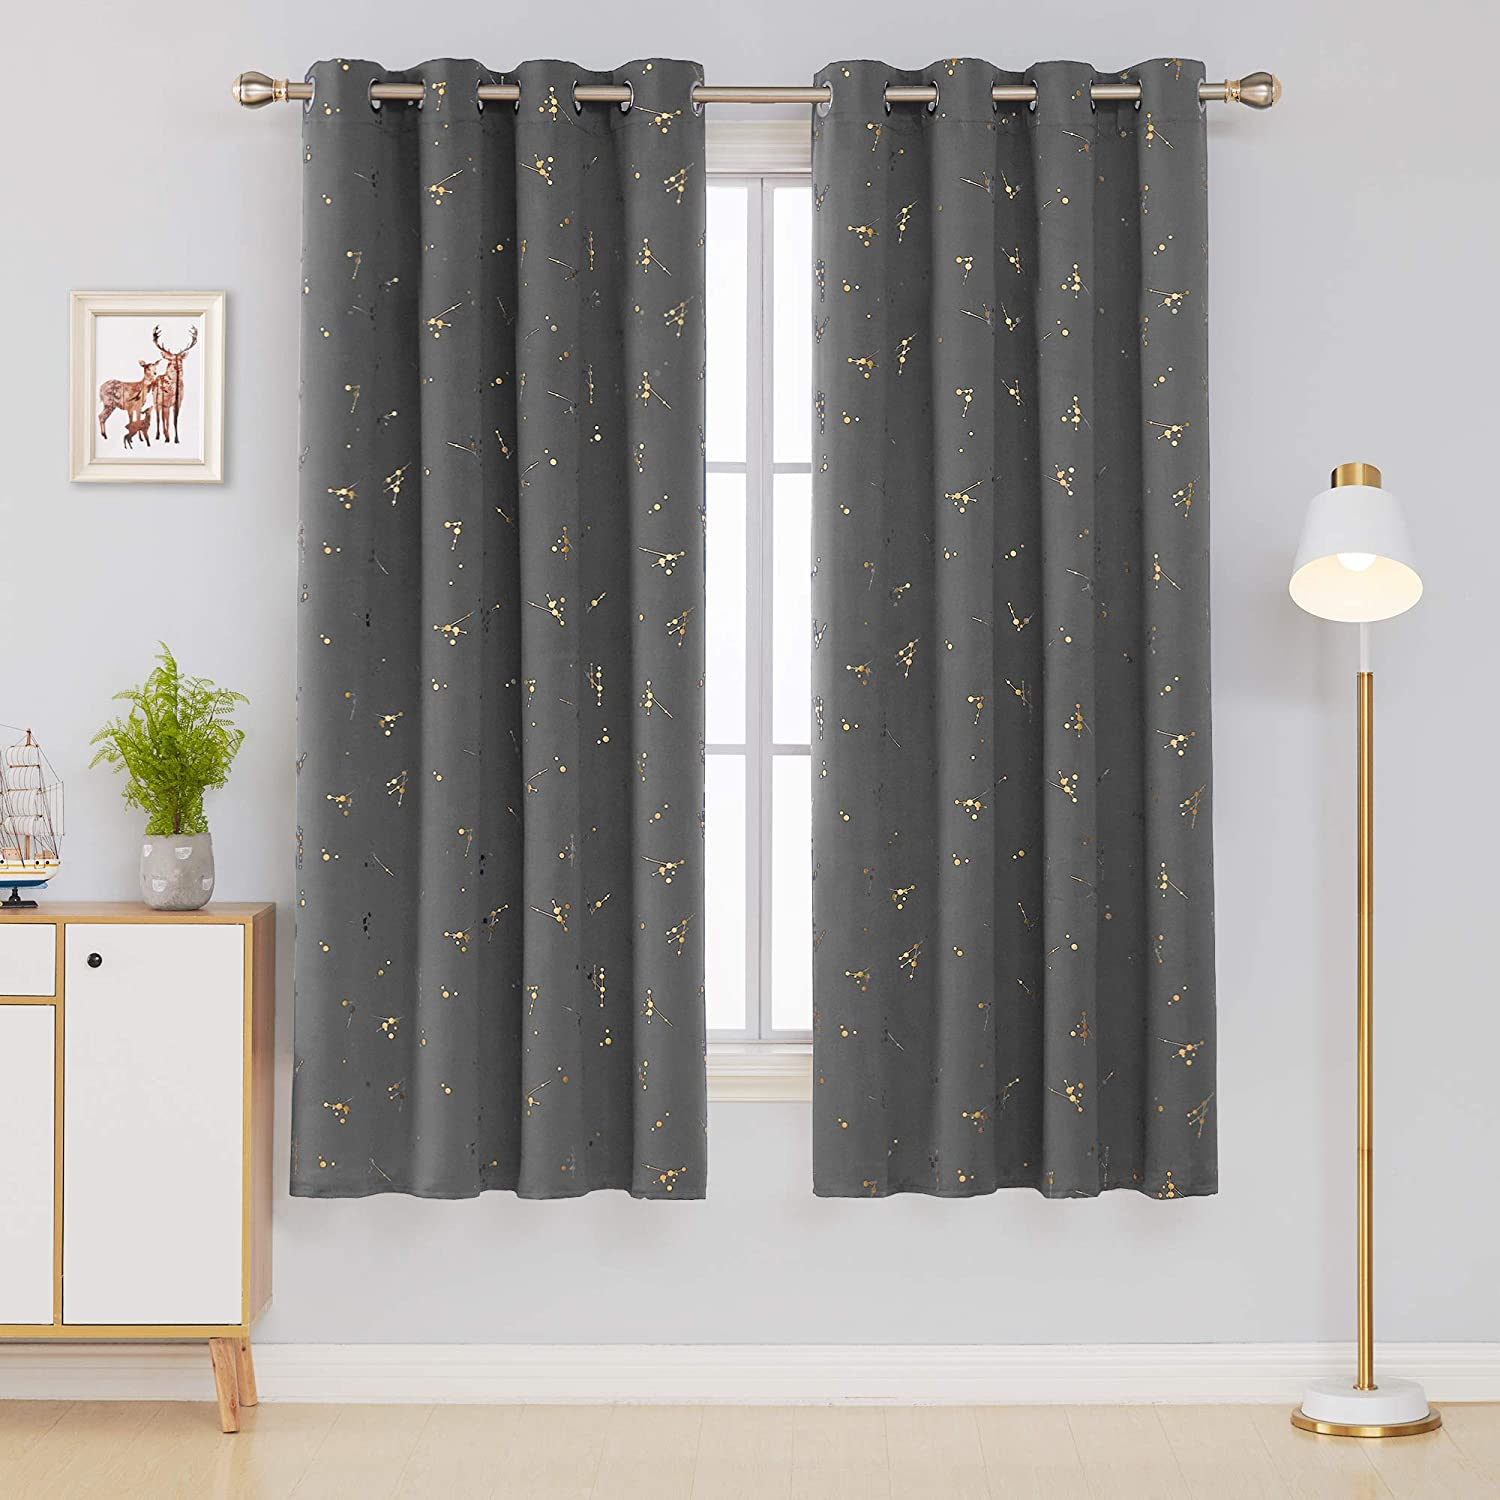 Deconovo Eyelet Curtains Blackout Curtains Gold Constellation Printed Thermal Insulated Curtains for Baby Nursery with Two Matching Tie Backs Royal Blue W66 x L72 One Pair